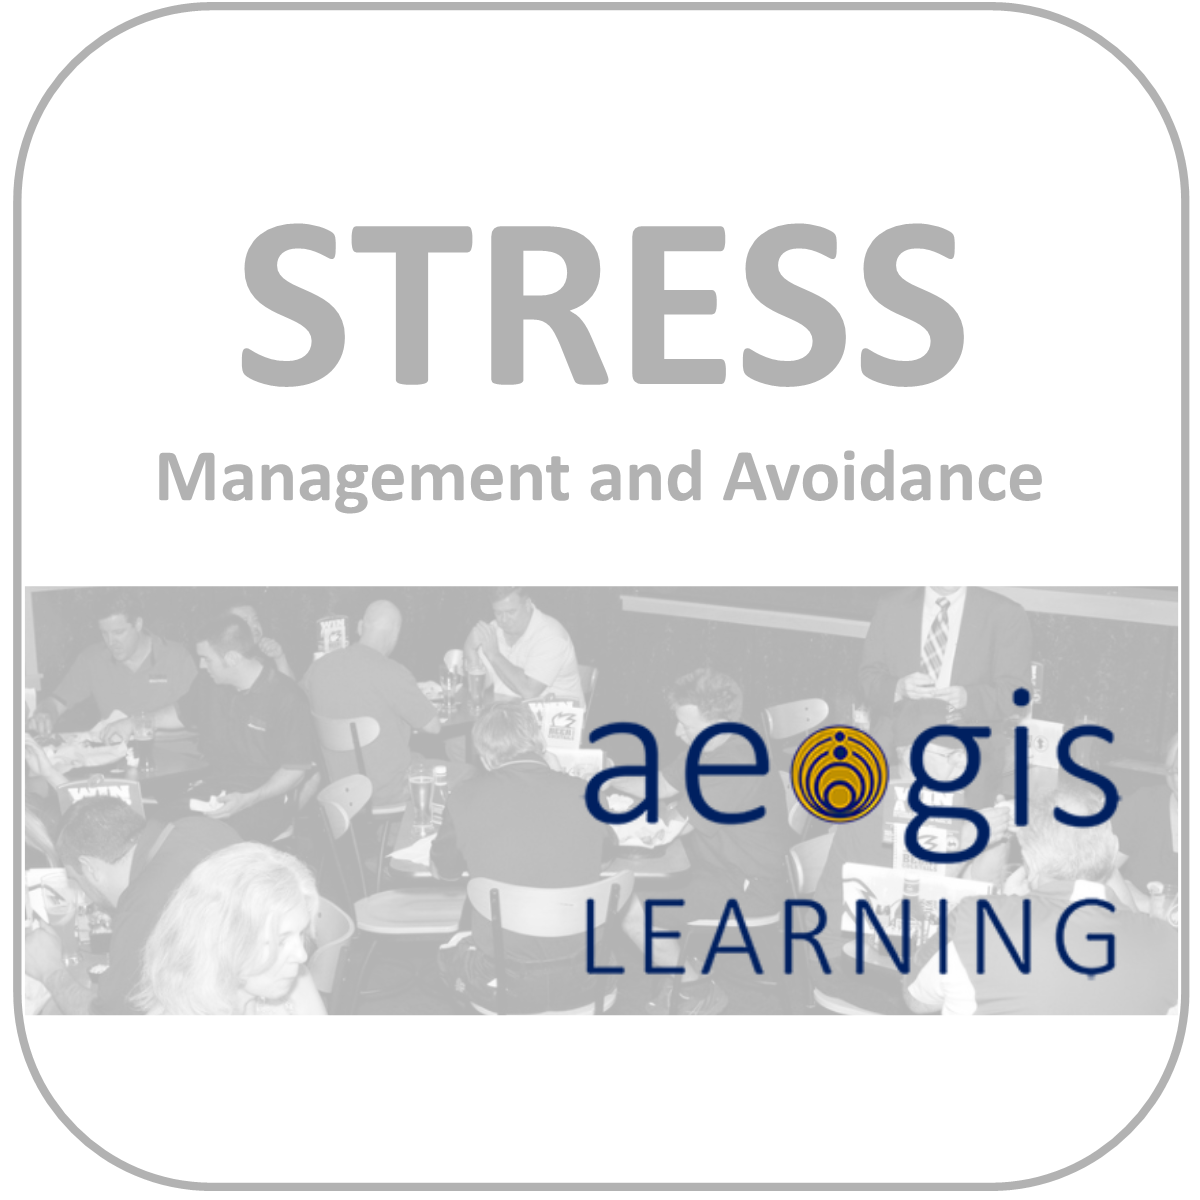 Stress Management Workshop from Aegis Learning